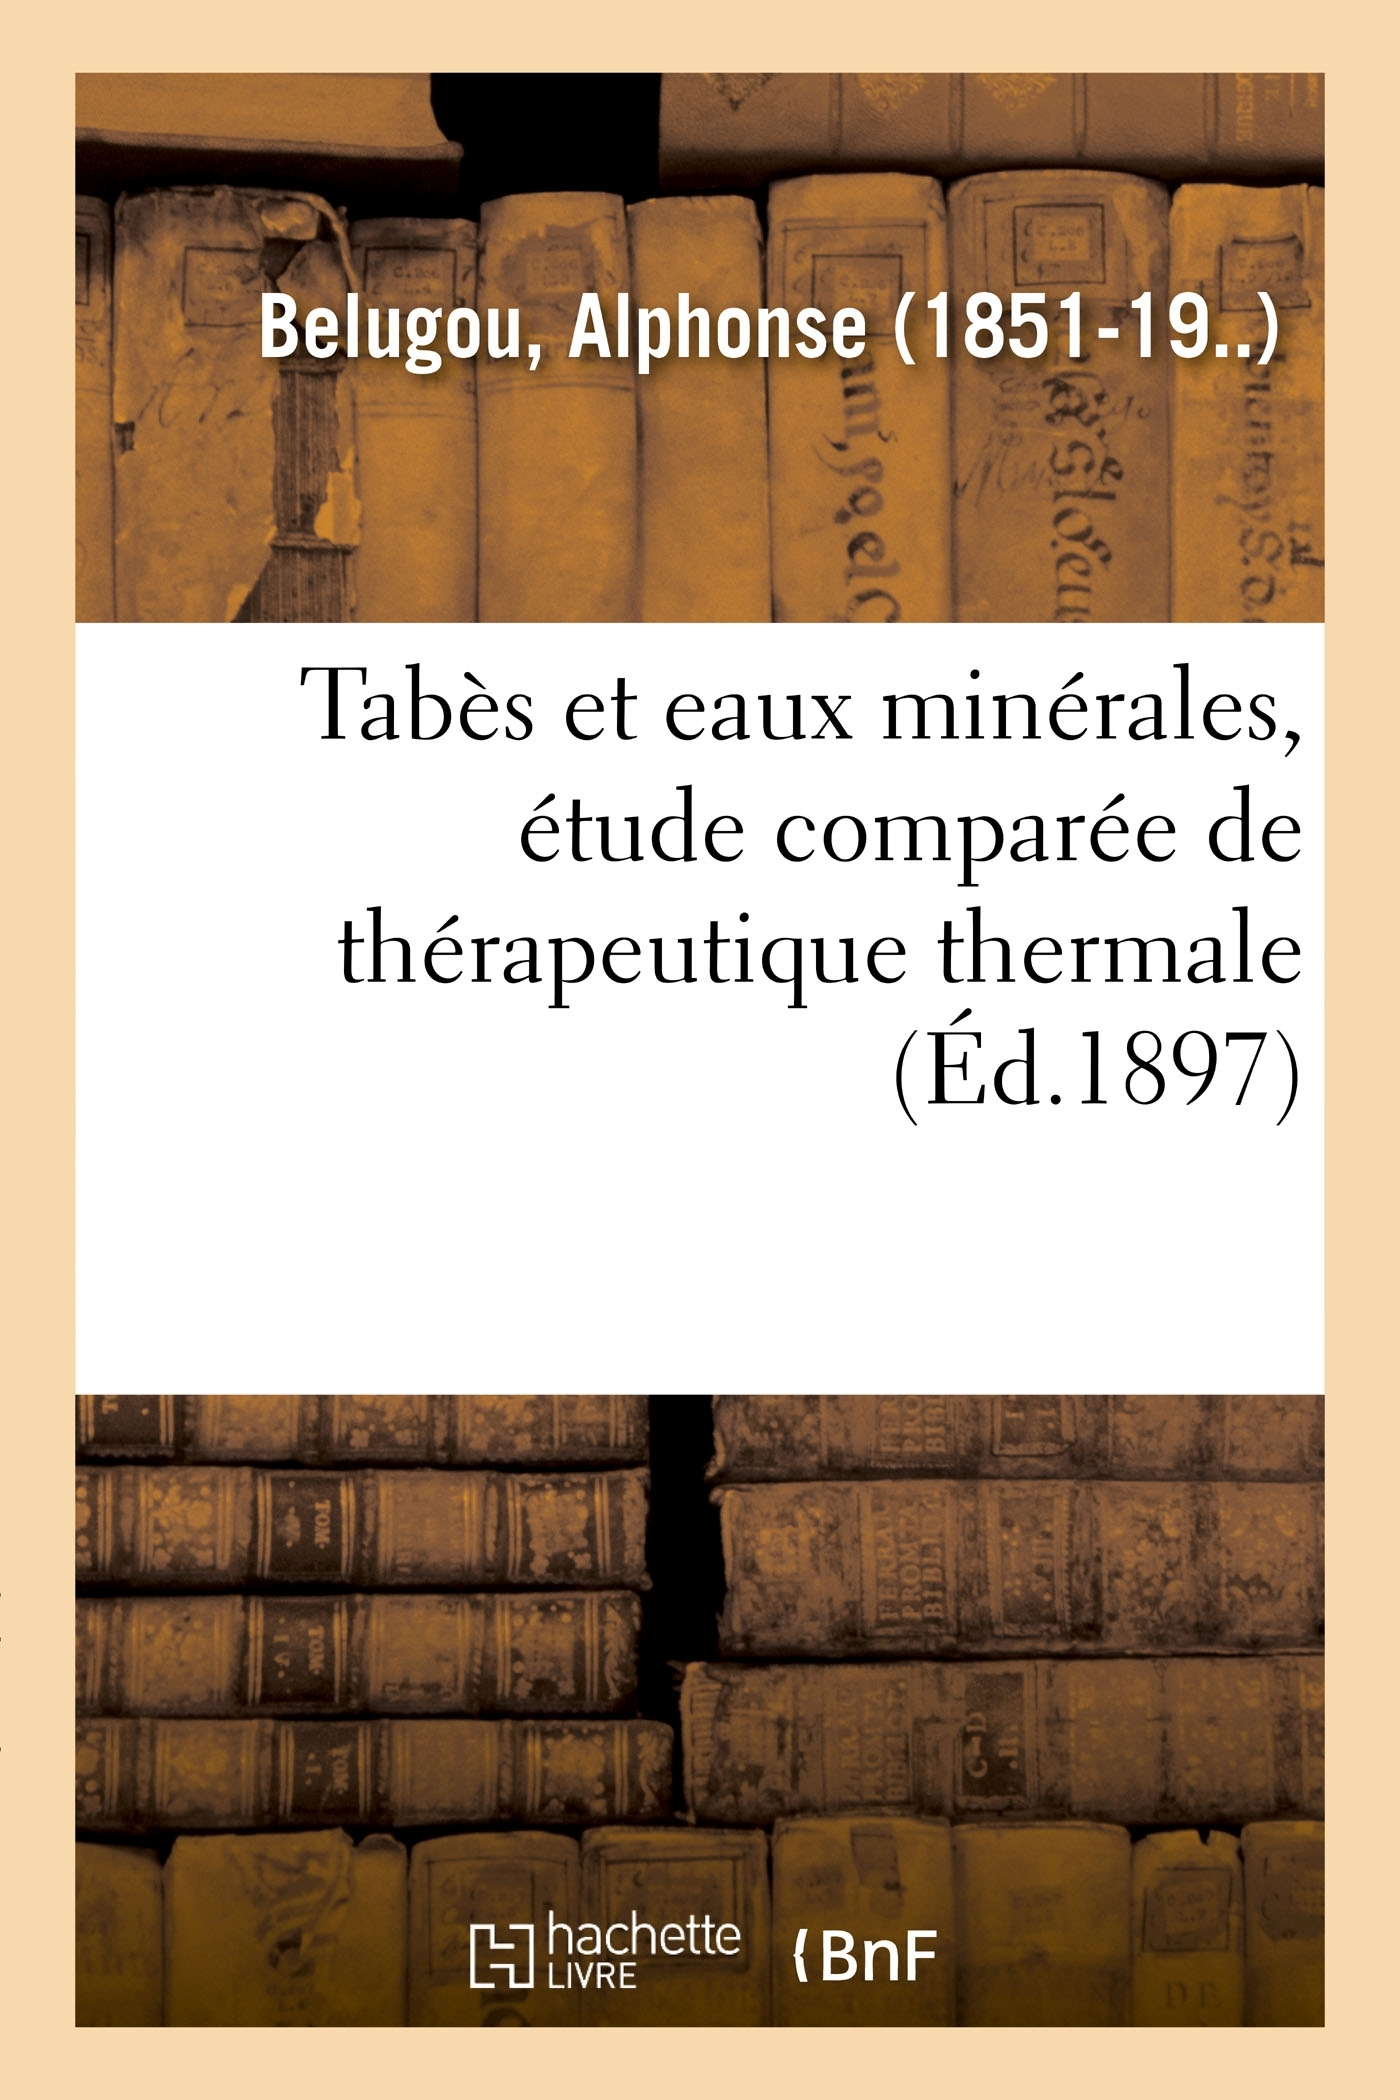 TABES ET EAUX MINERALES, ETUDE COMPAREE DE THERAPEUTIQUE THERMALE